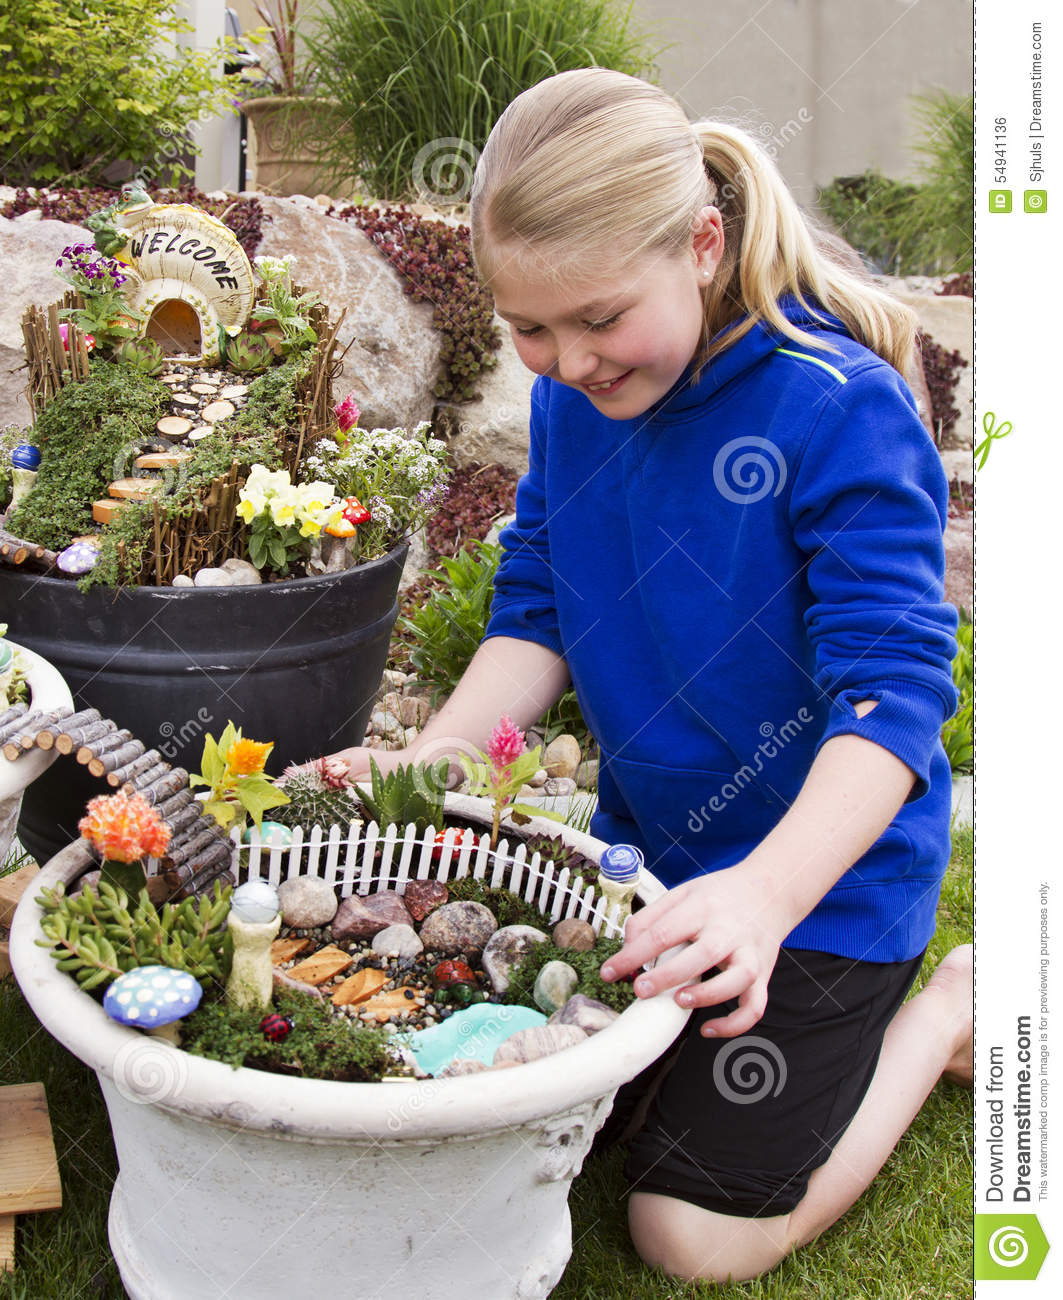 Young Girl Helping To Make Fairy Garden In A Flower Pot Stock Photo Image 54941136